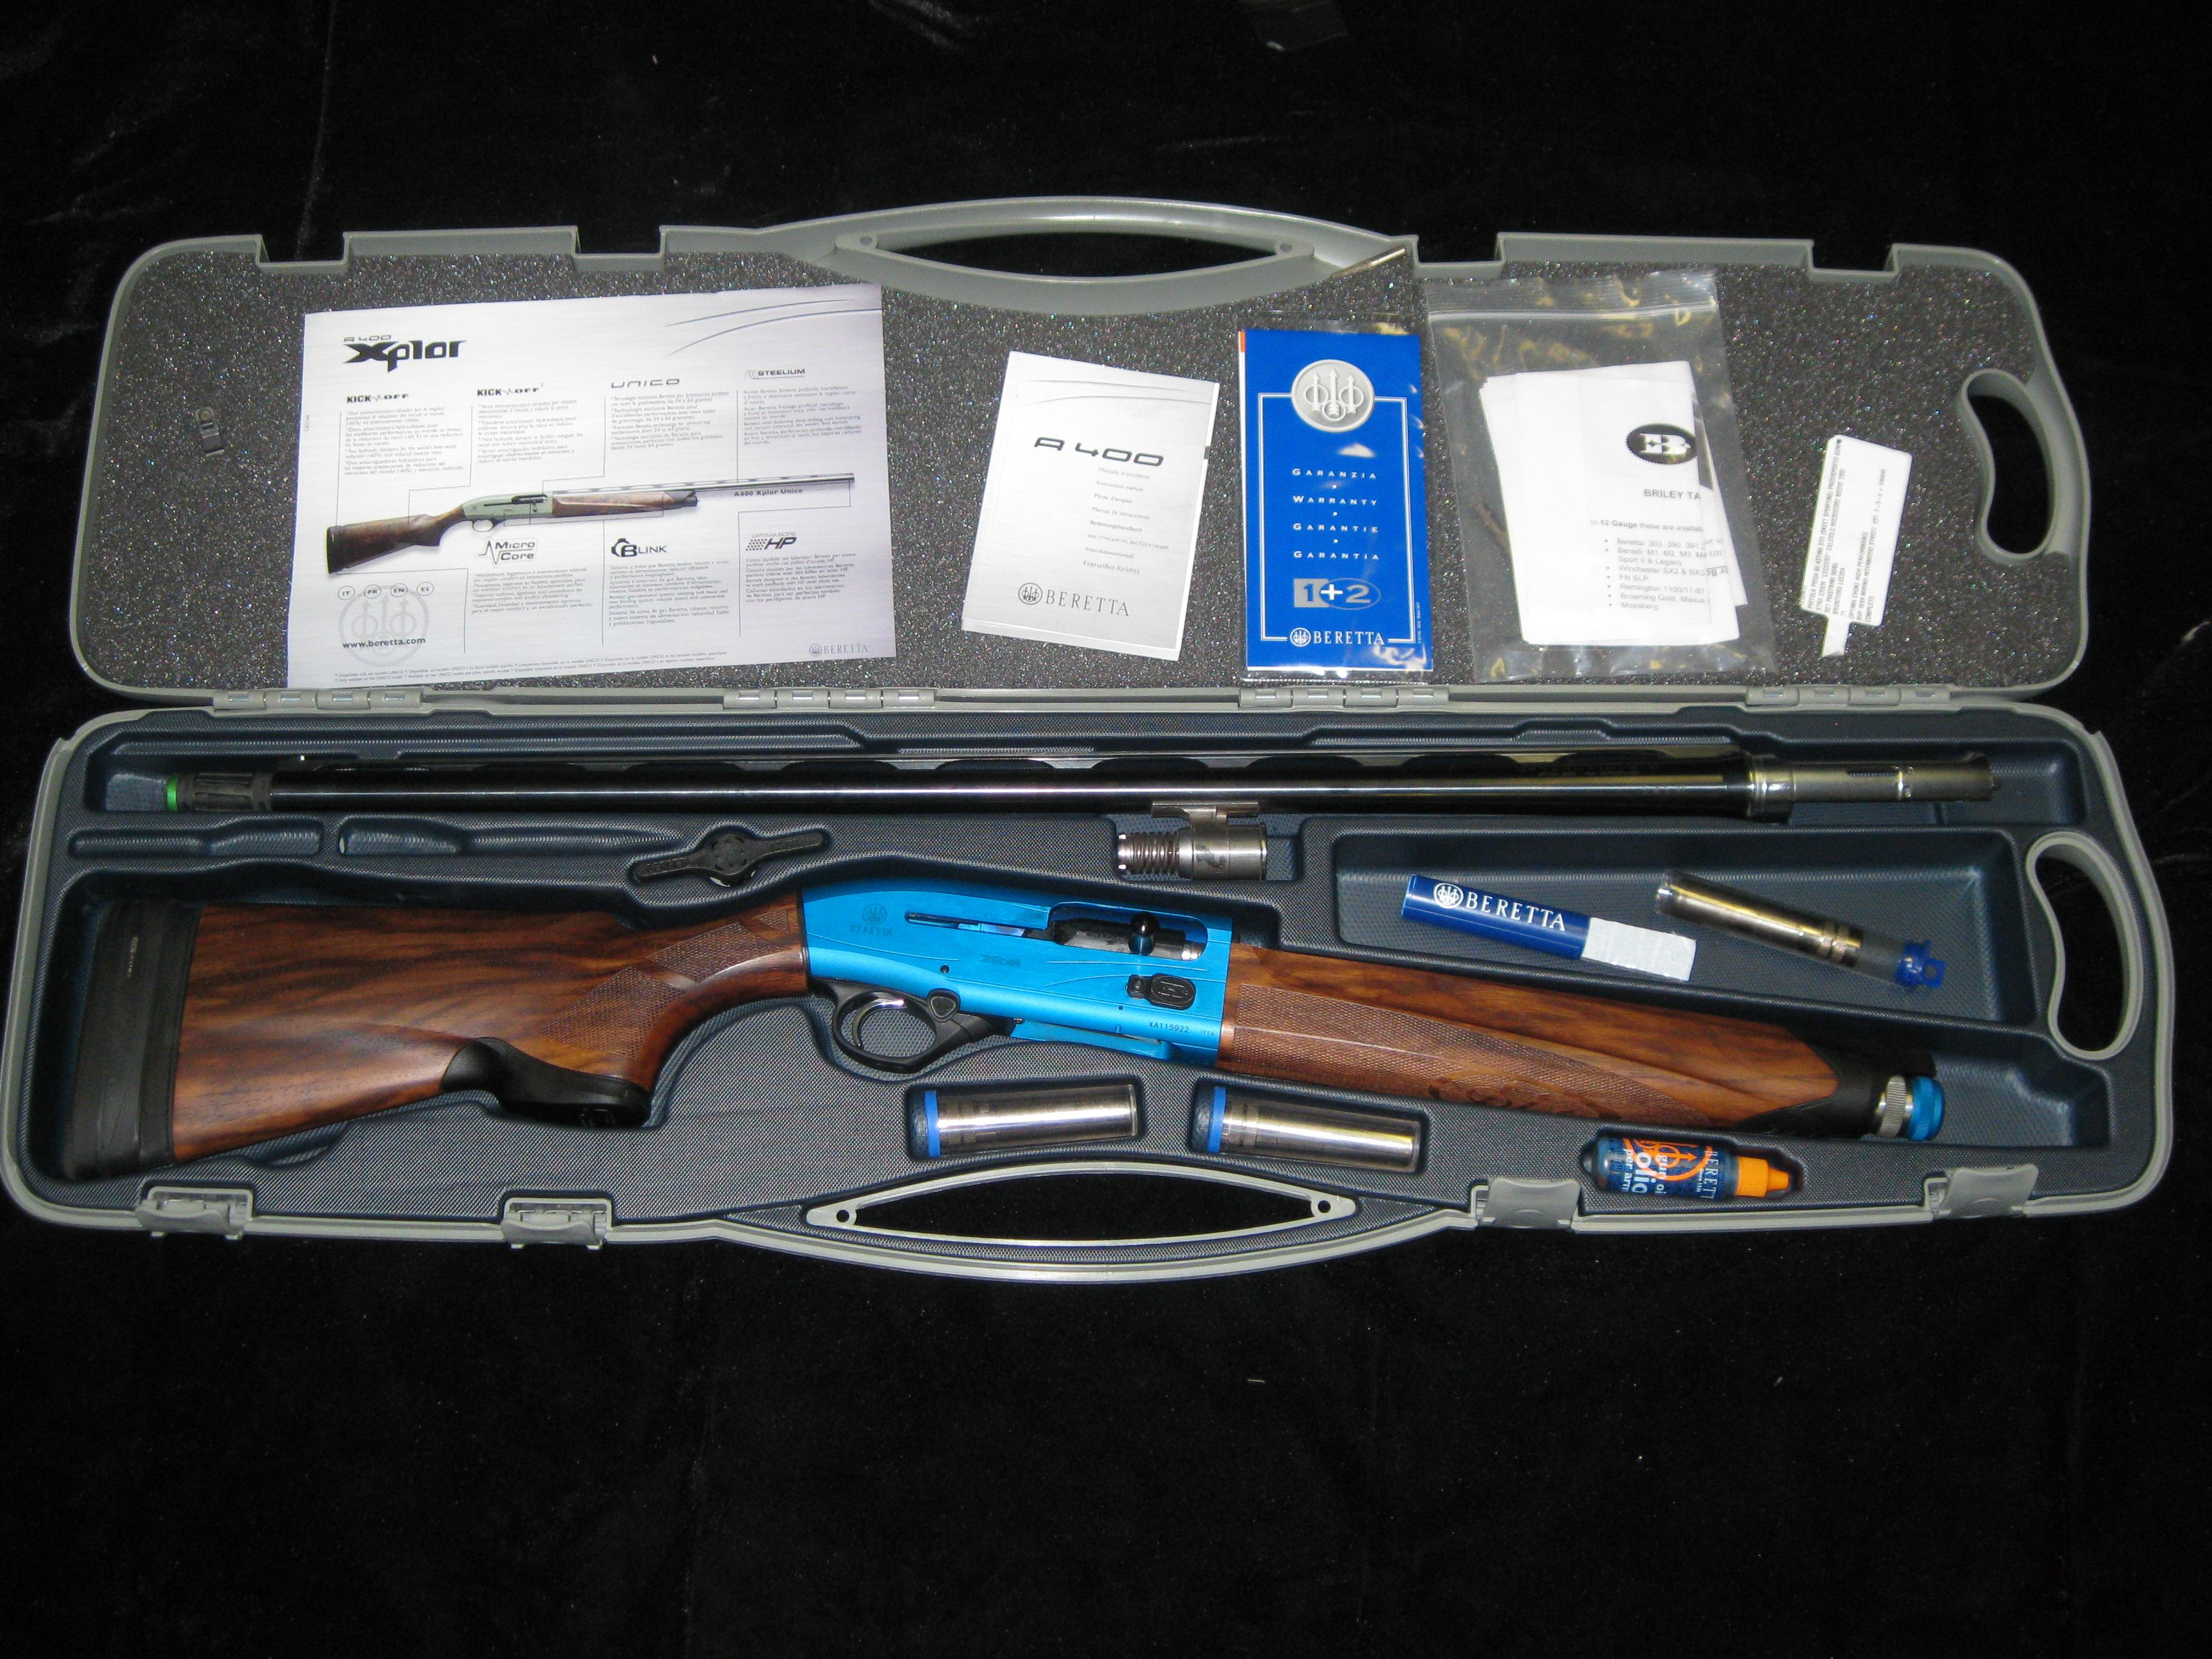 BERETTA A400 XCEL 12 GAUGE 28 INCH W/ KICKOFF STOCK 28 BARREL BRILEY UPGRADE  Guns > Shotguns > Beretta Shotguns > Autoloaders > Trap/Skeet